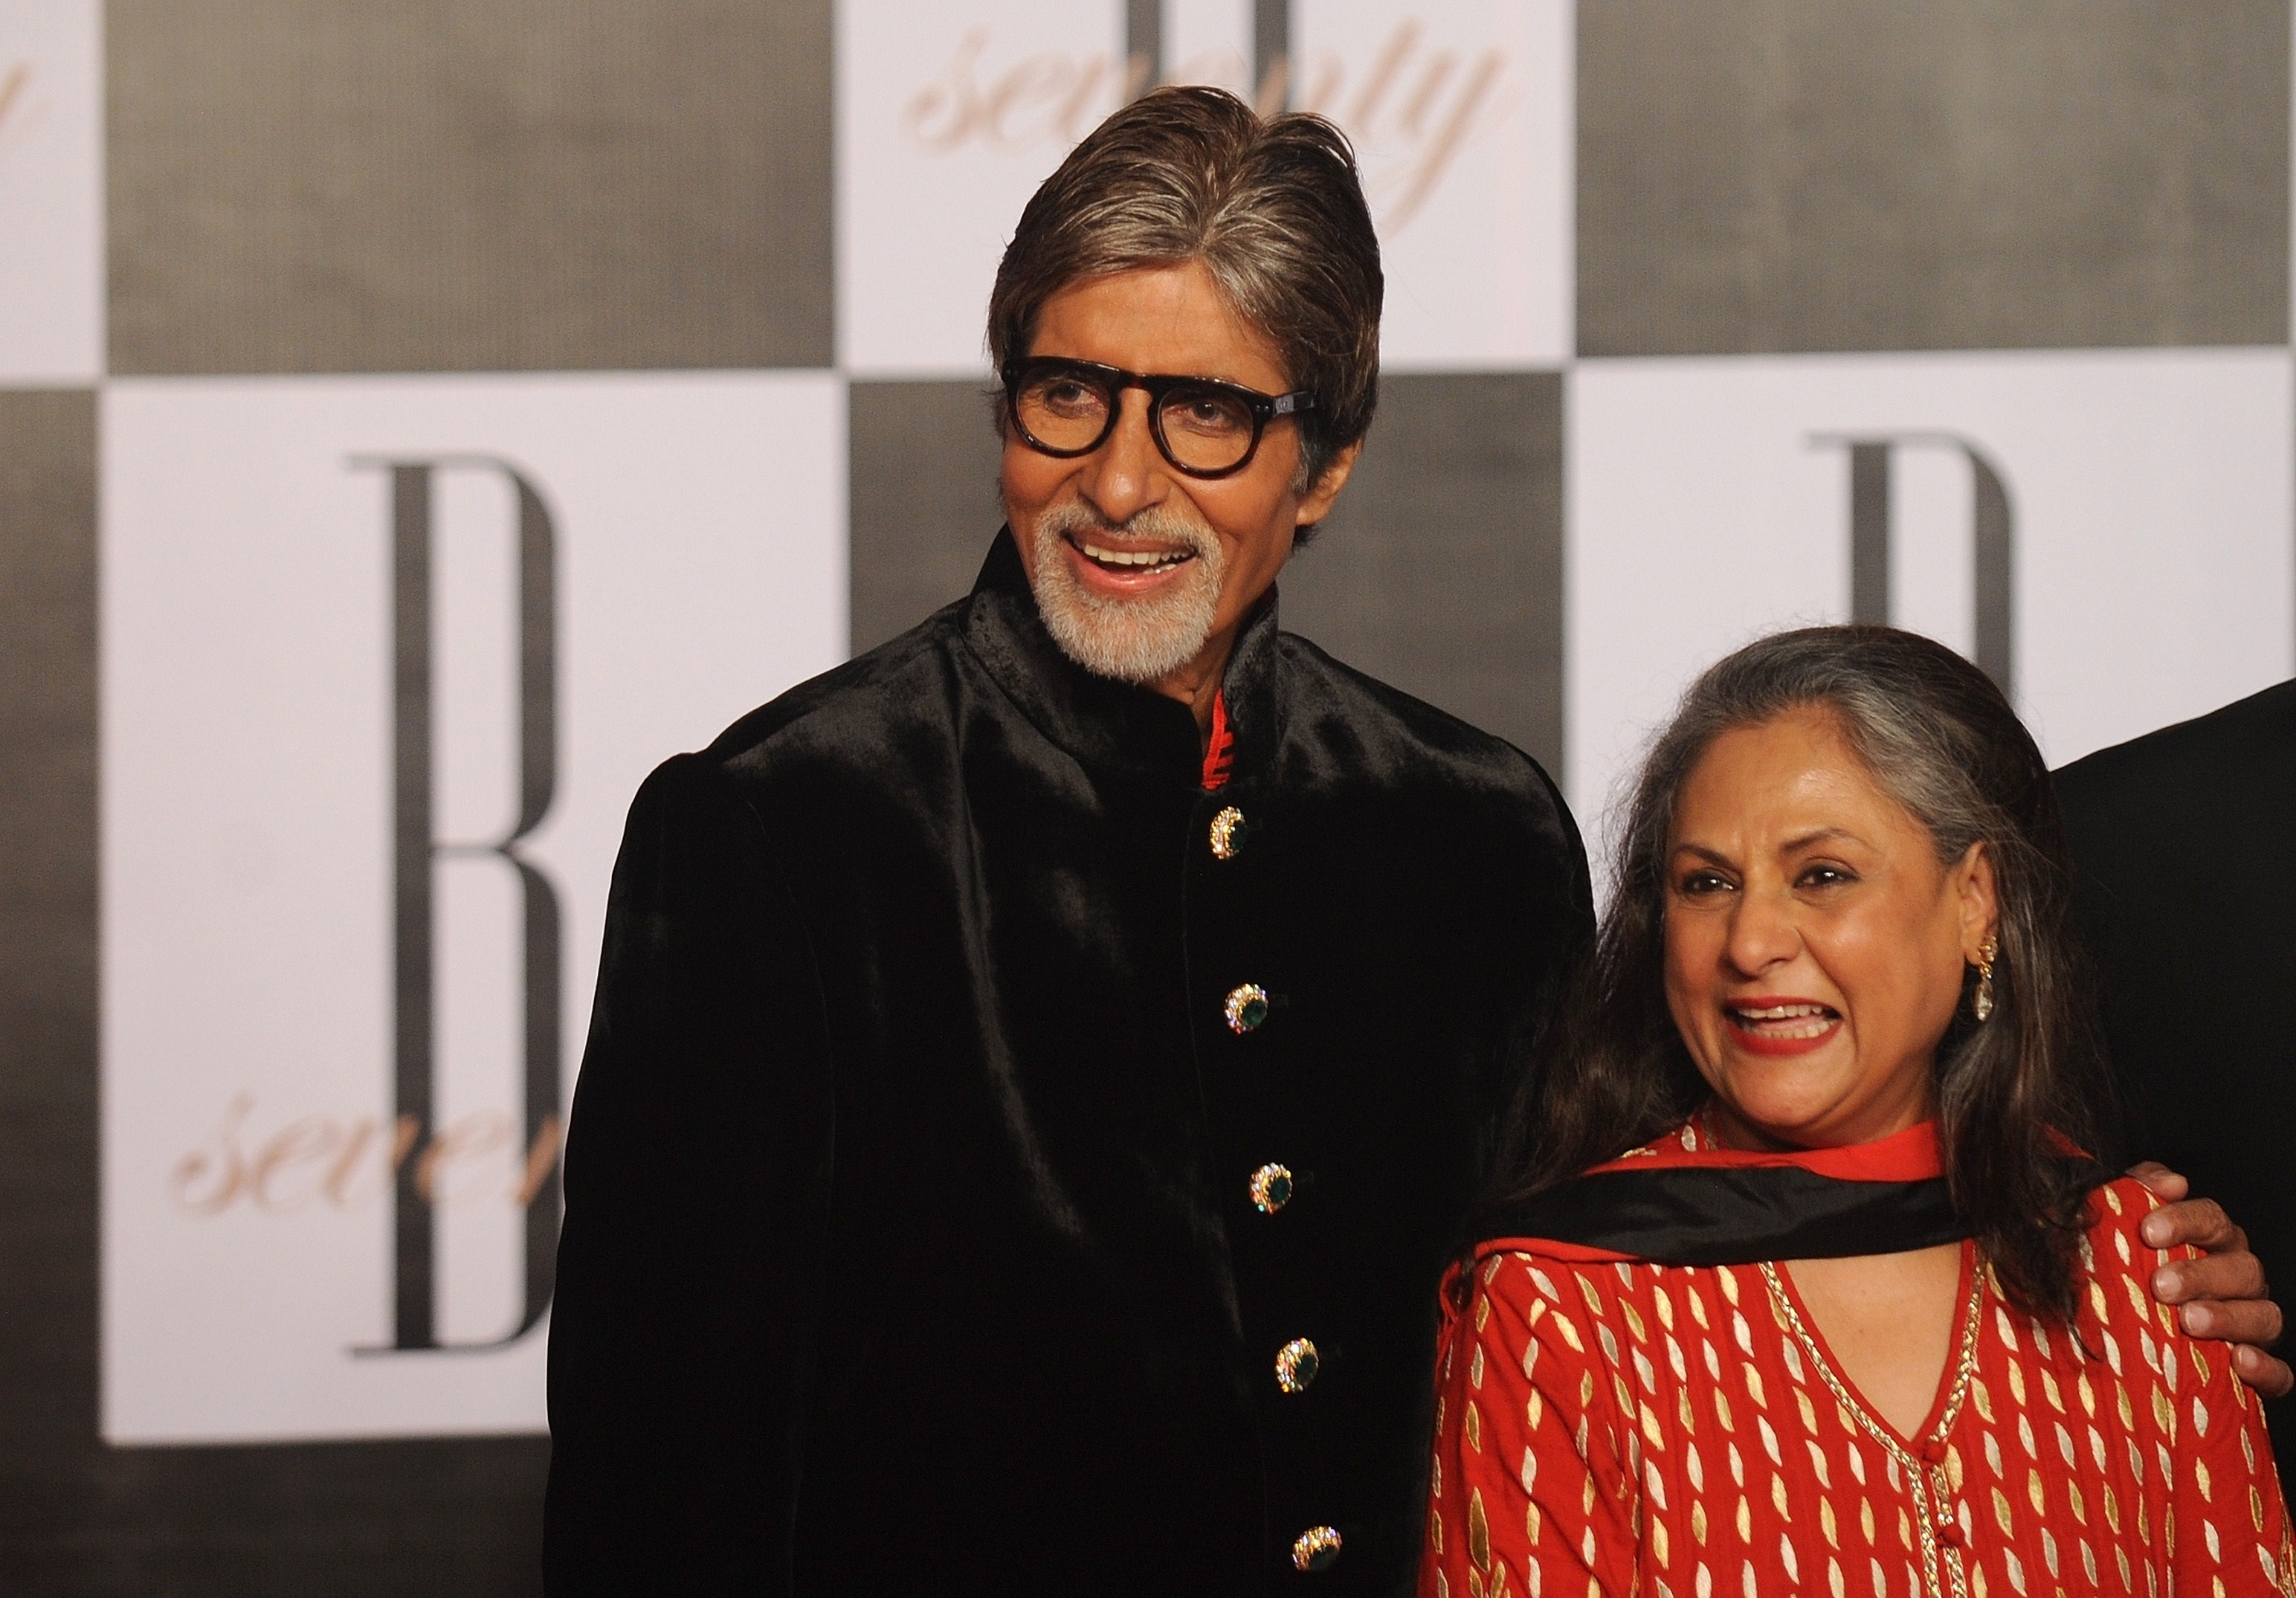 Amitabh Bachchan Family Tree, Wife, Son And Daughter In Laws Photos